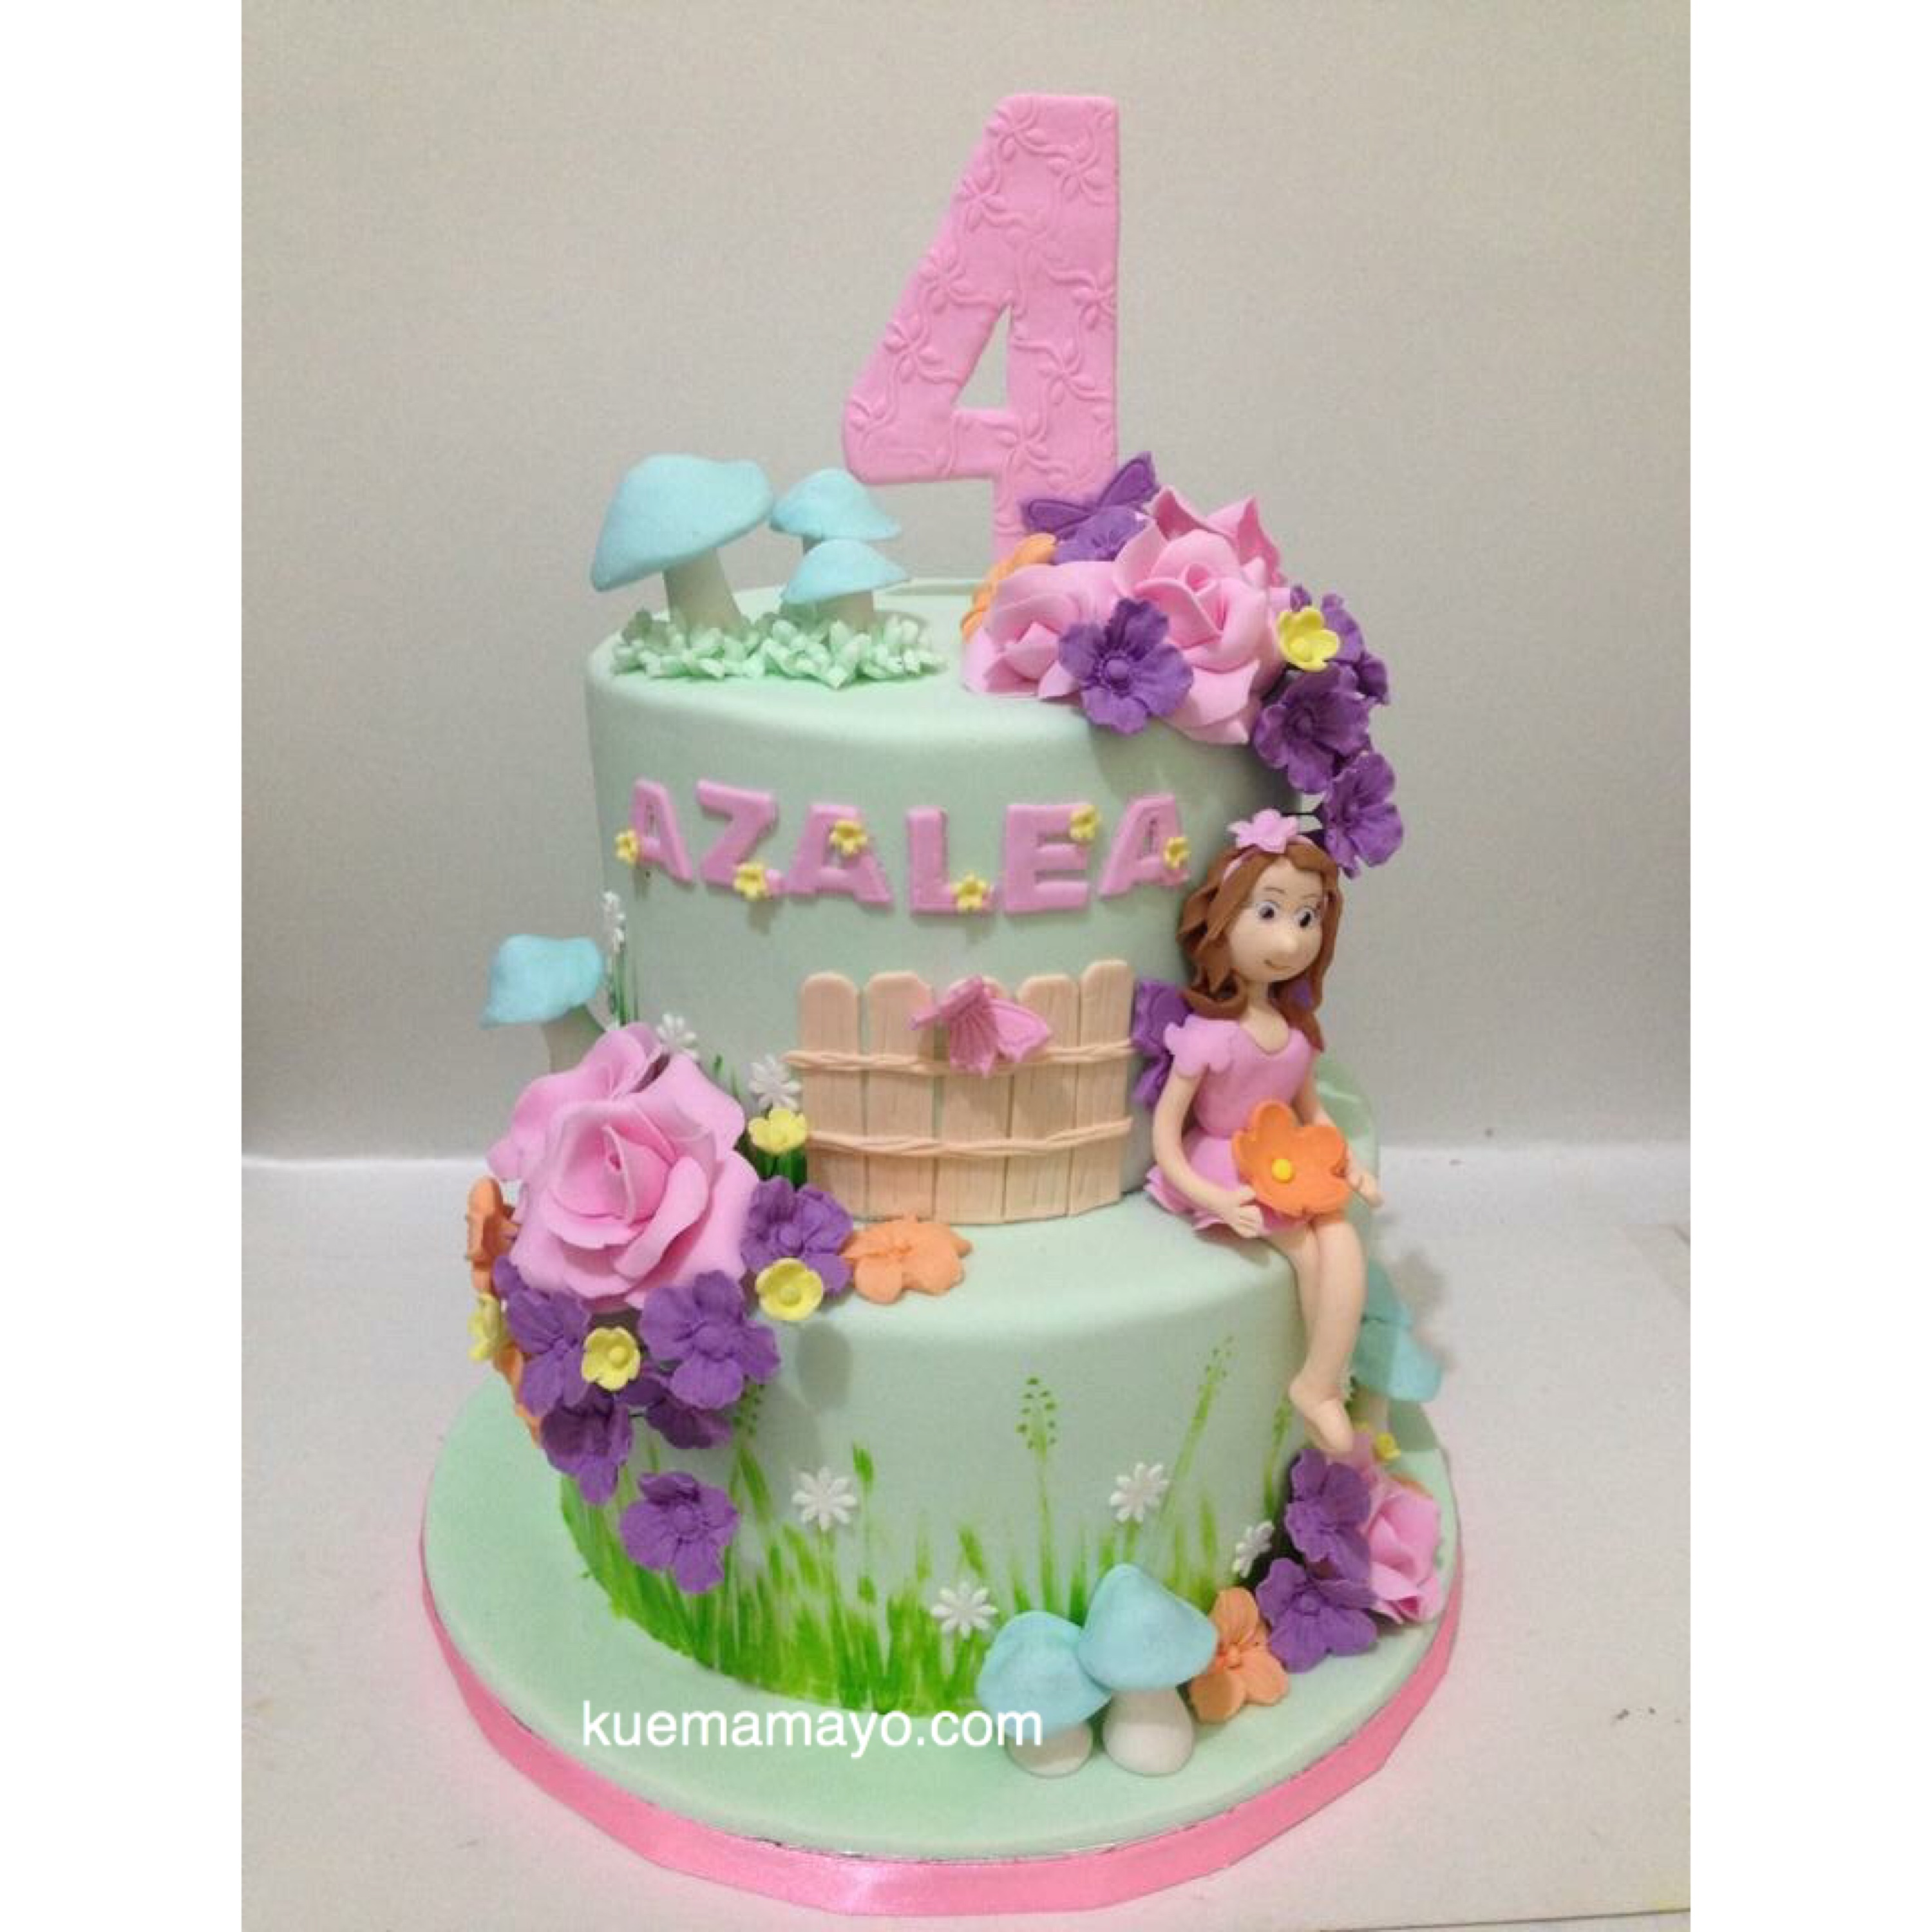 The Fairies Cake Dan Artinya : ?Little fairy themed cake Mamayo